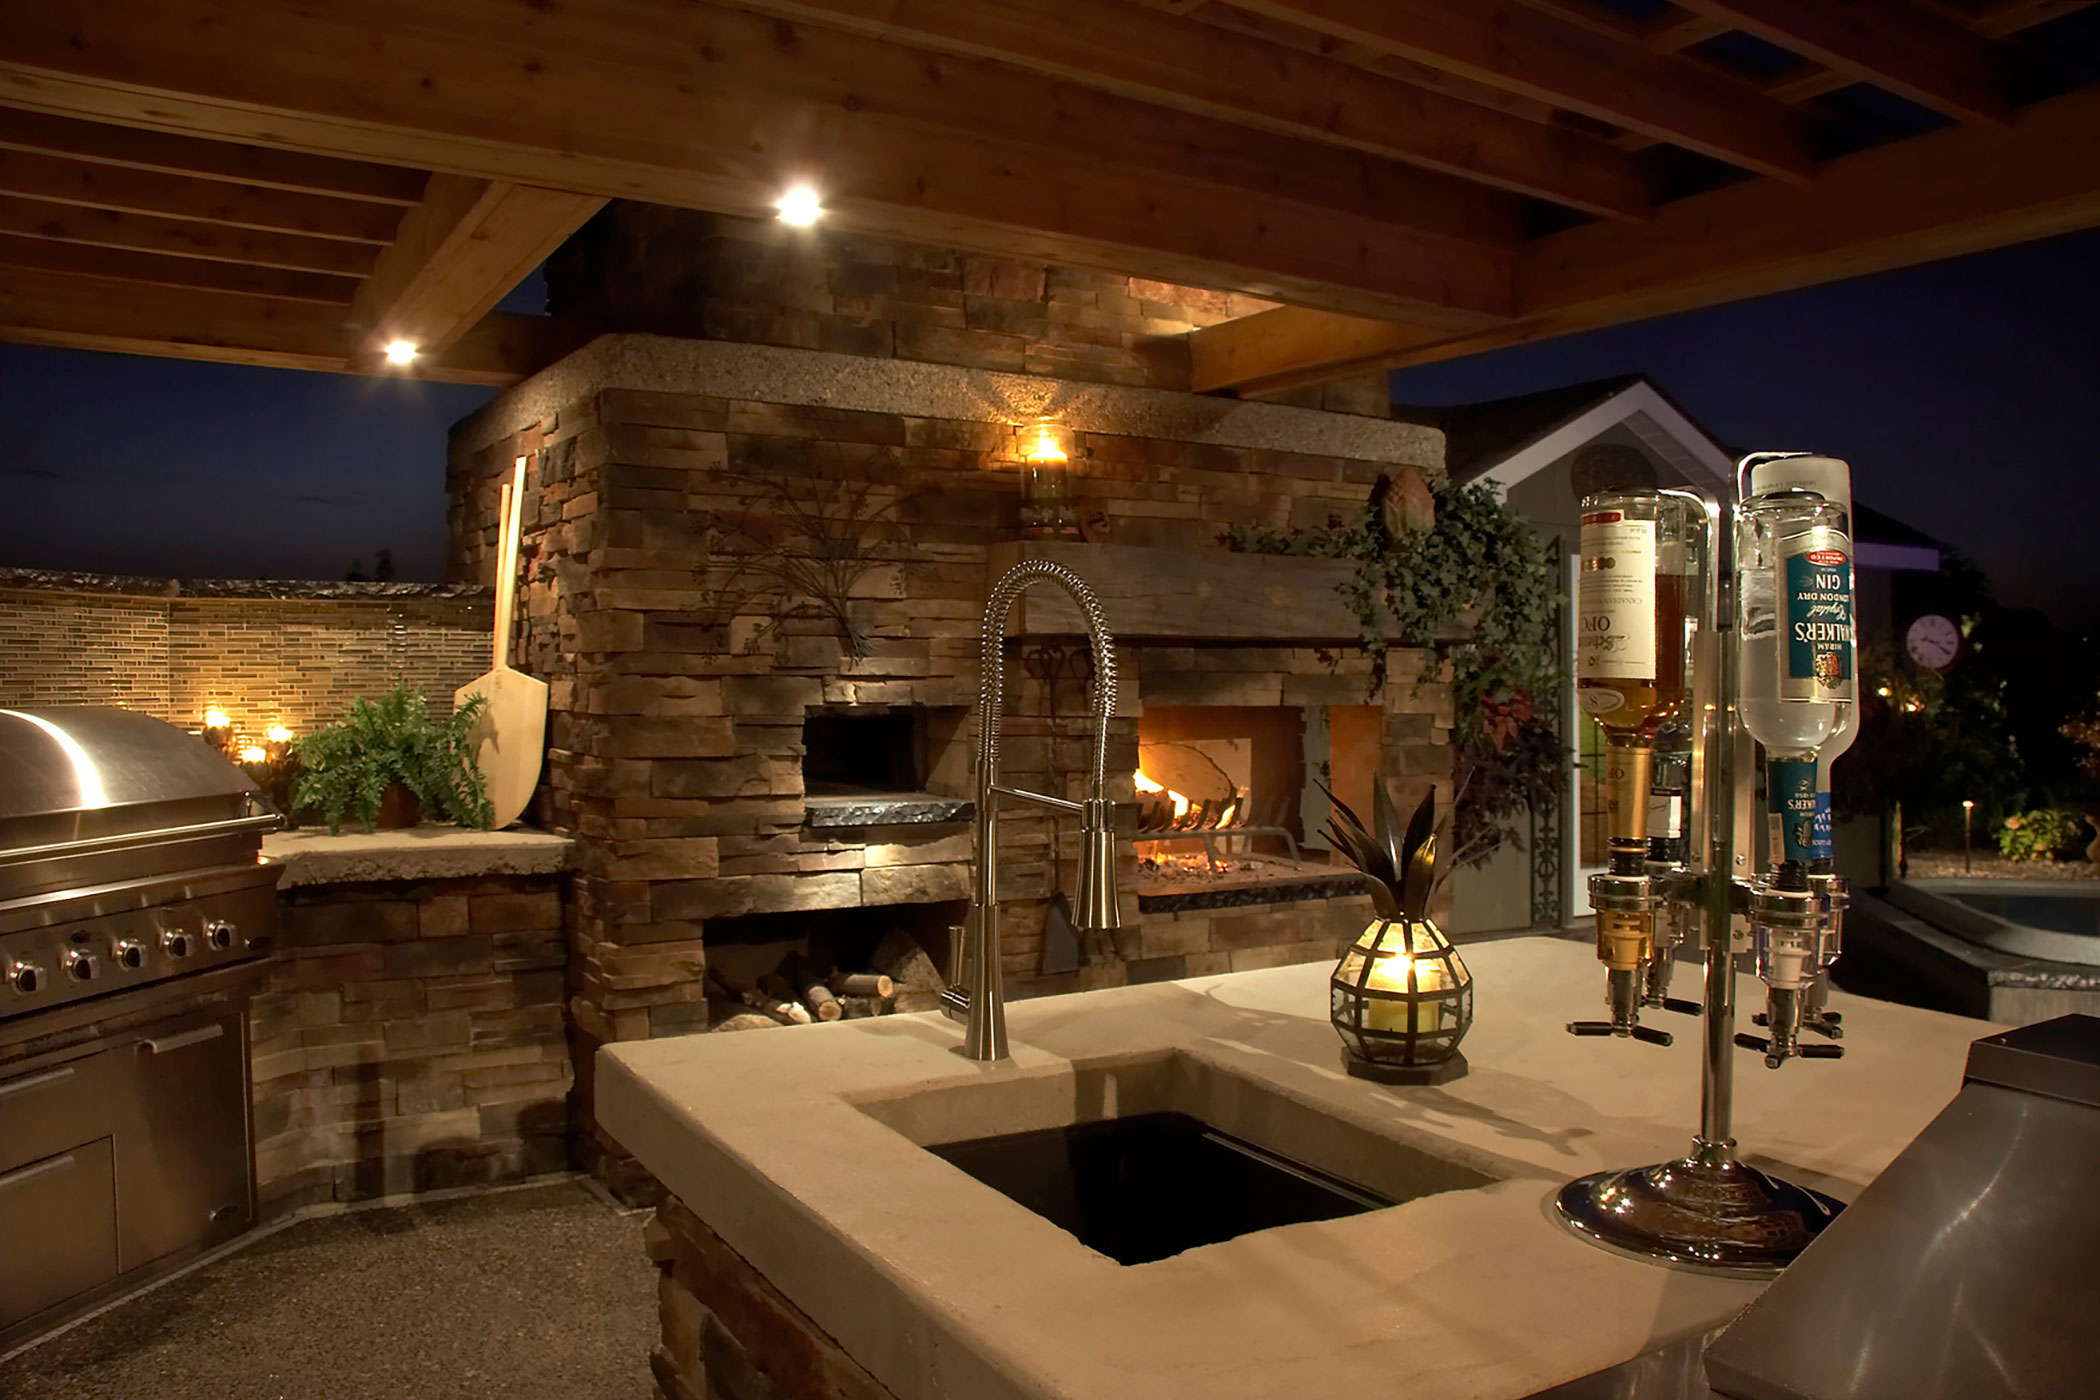 Outdoor Kitchens and Fireplaces